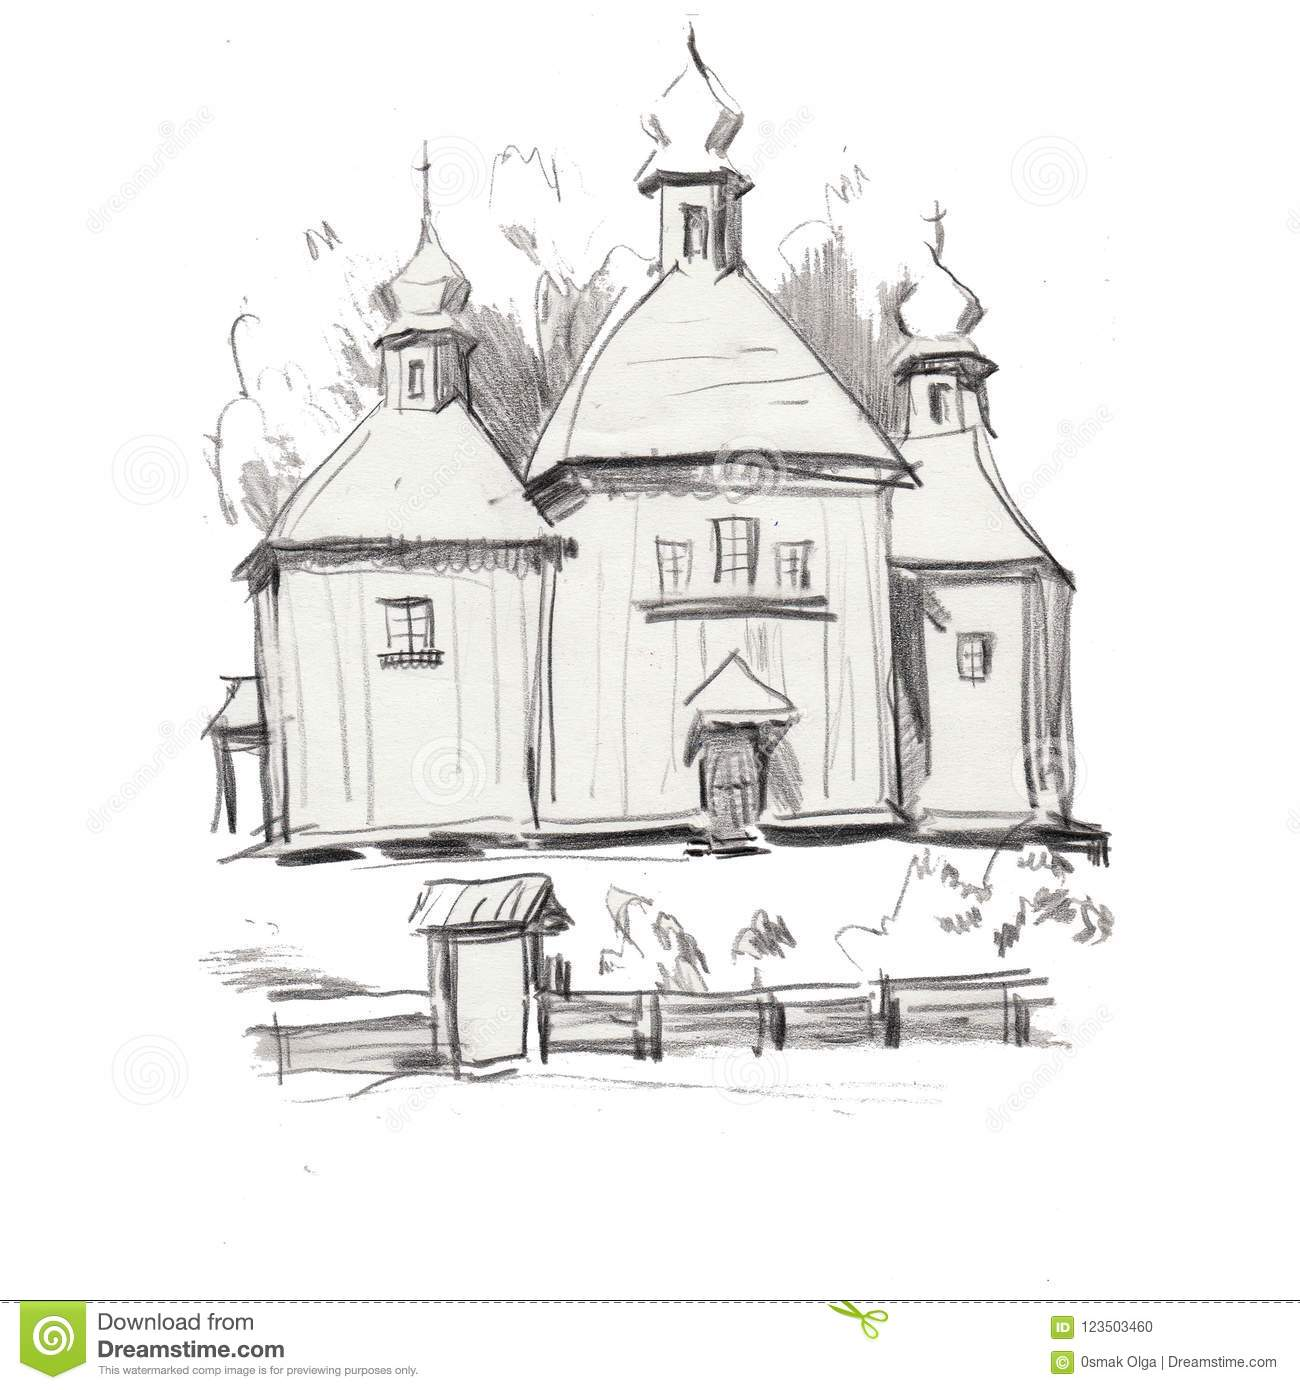 Drawing of architectural structures of the ancient wooden church in the rural landscape sketch handmade wooden church architecture building old